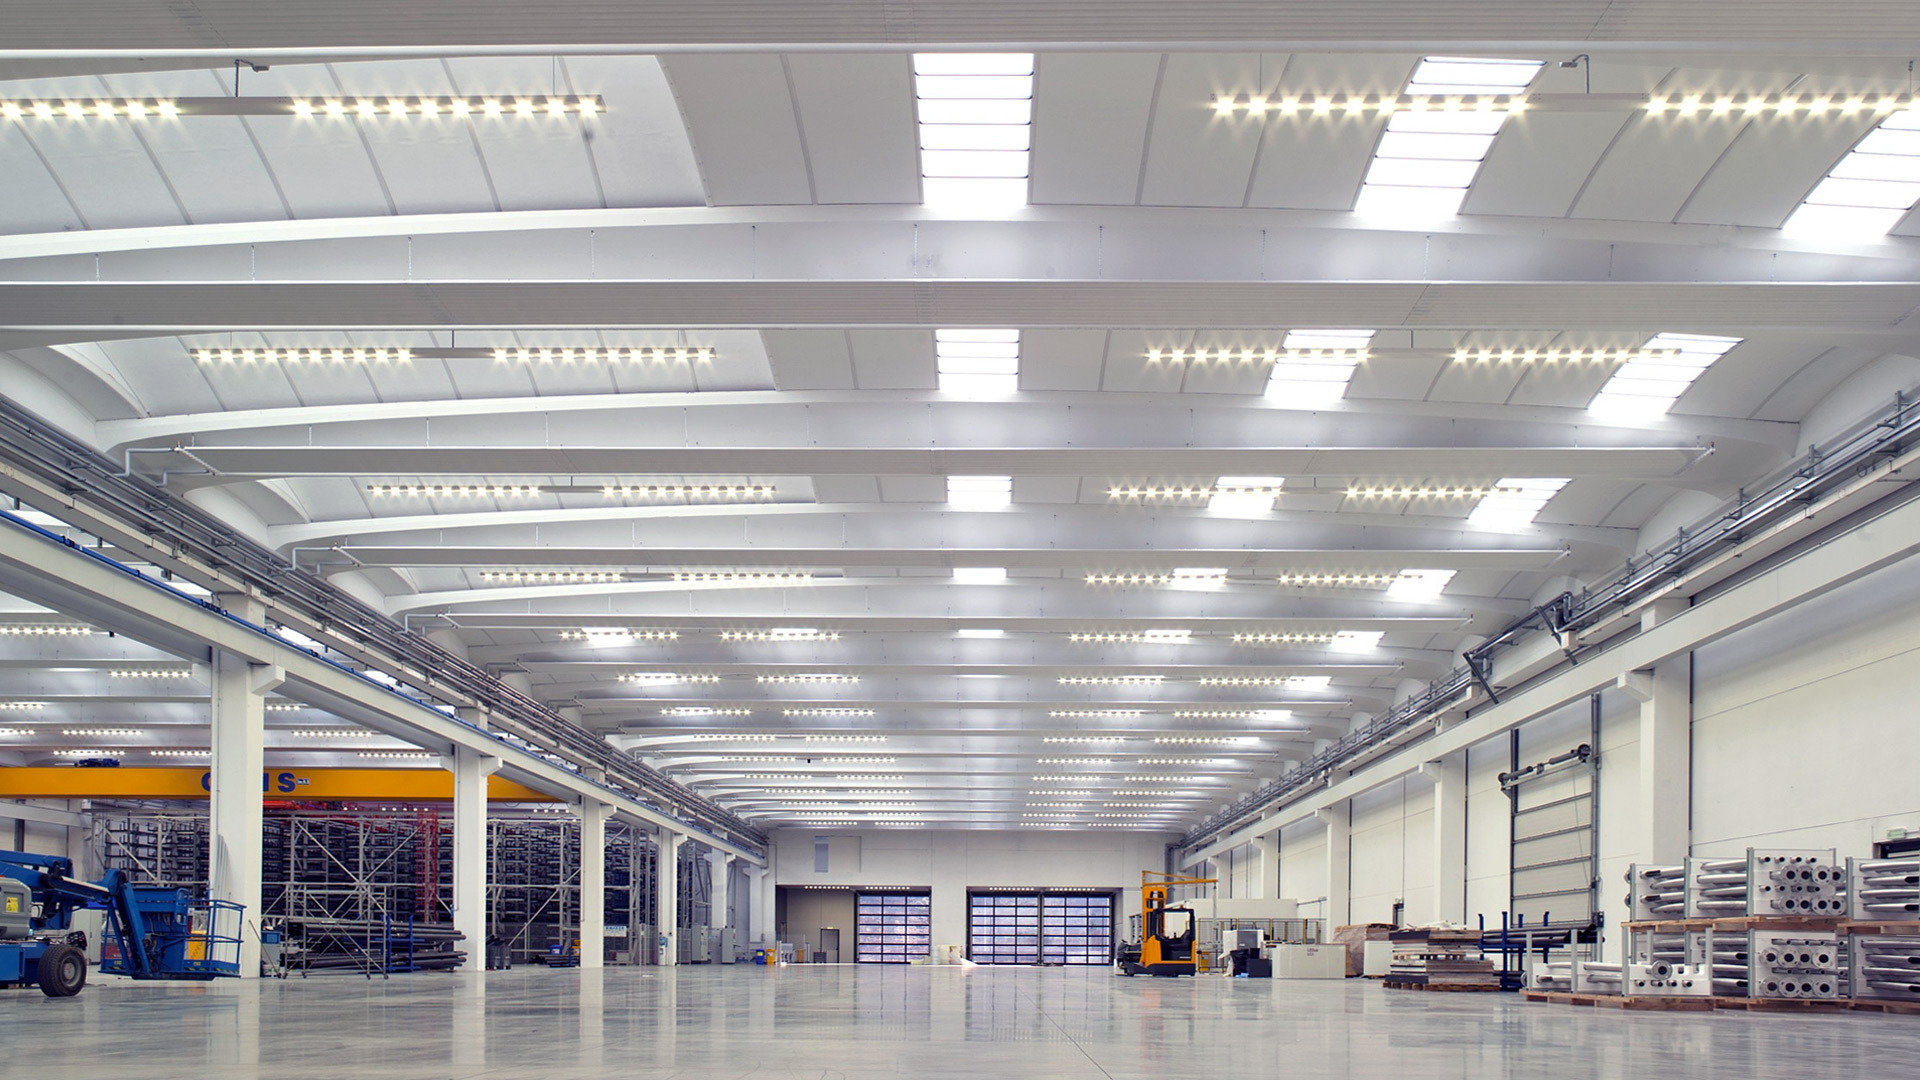 Plafoniere Per Capannoni Industriali : Flexsolight illuminazione industriale led